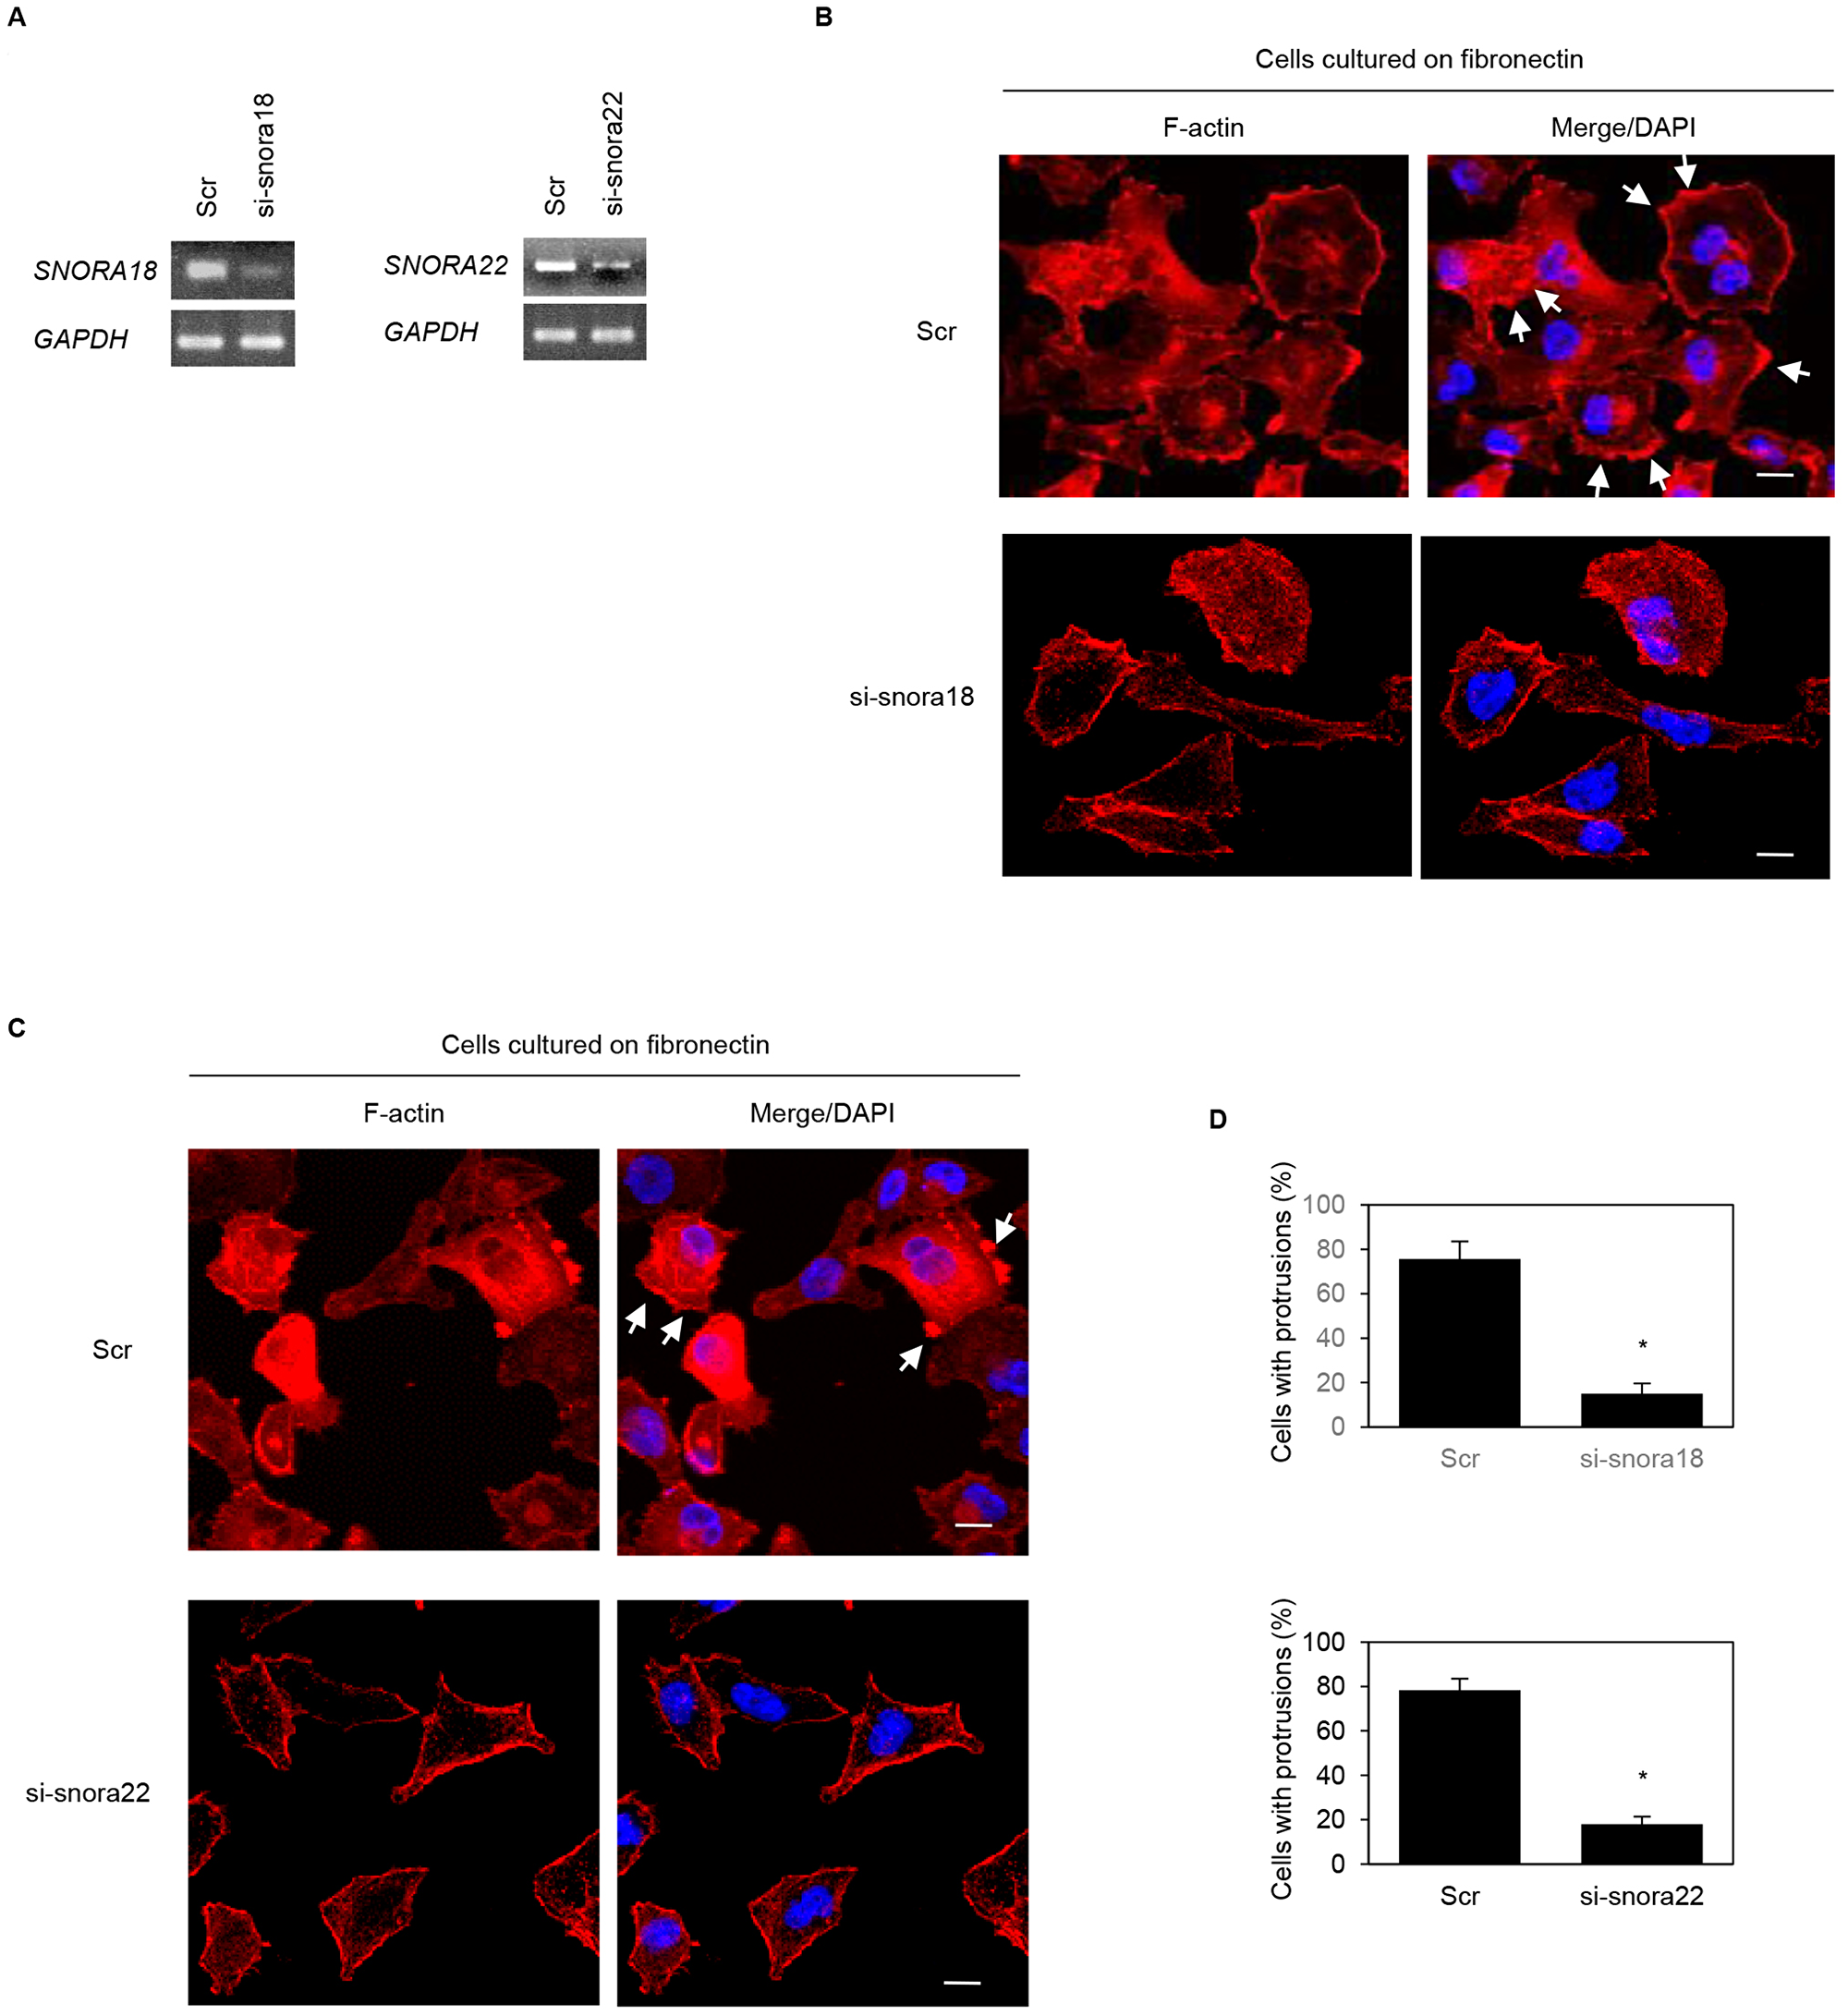 Roles of KHSRP-bound snoRNAs in forming cell protrusions in PANC-1 cells.